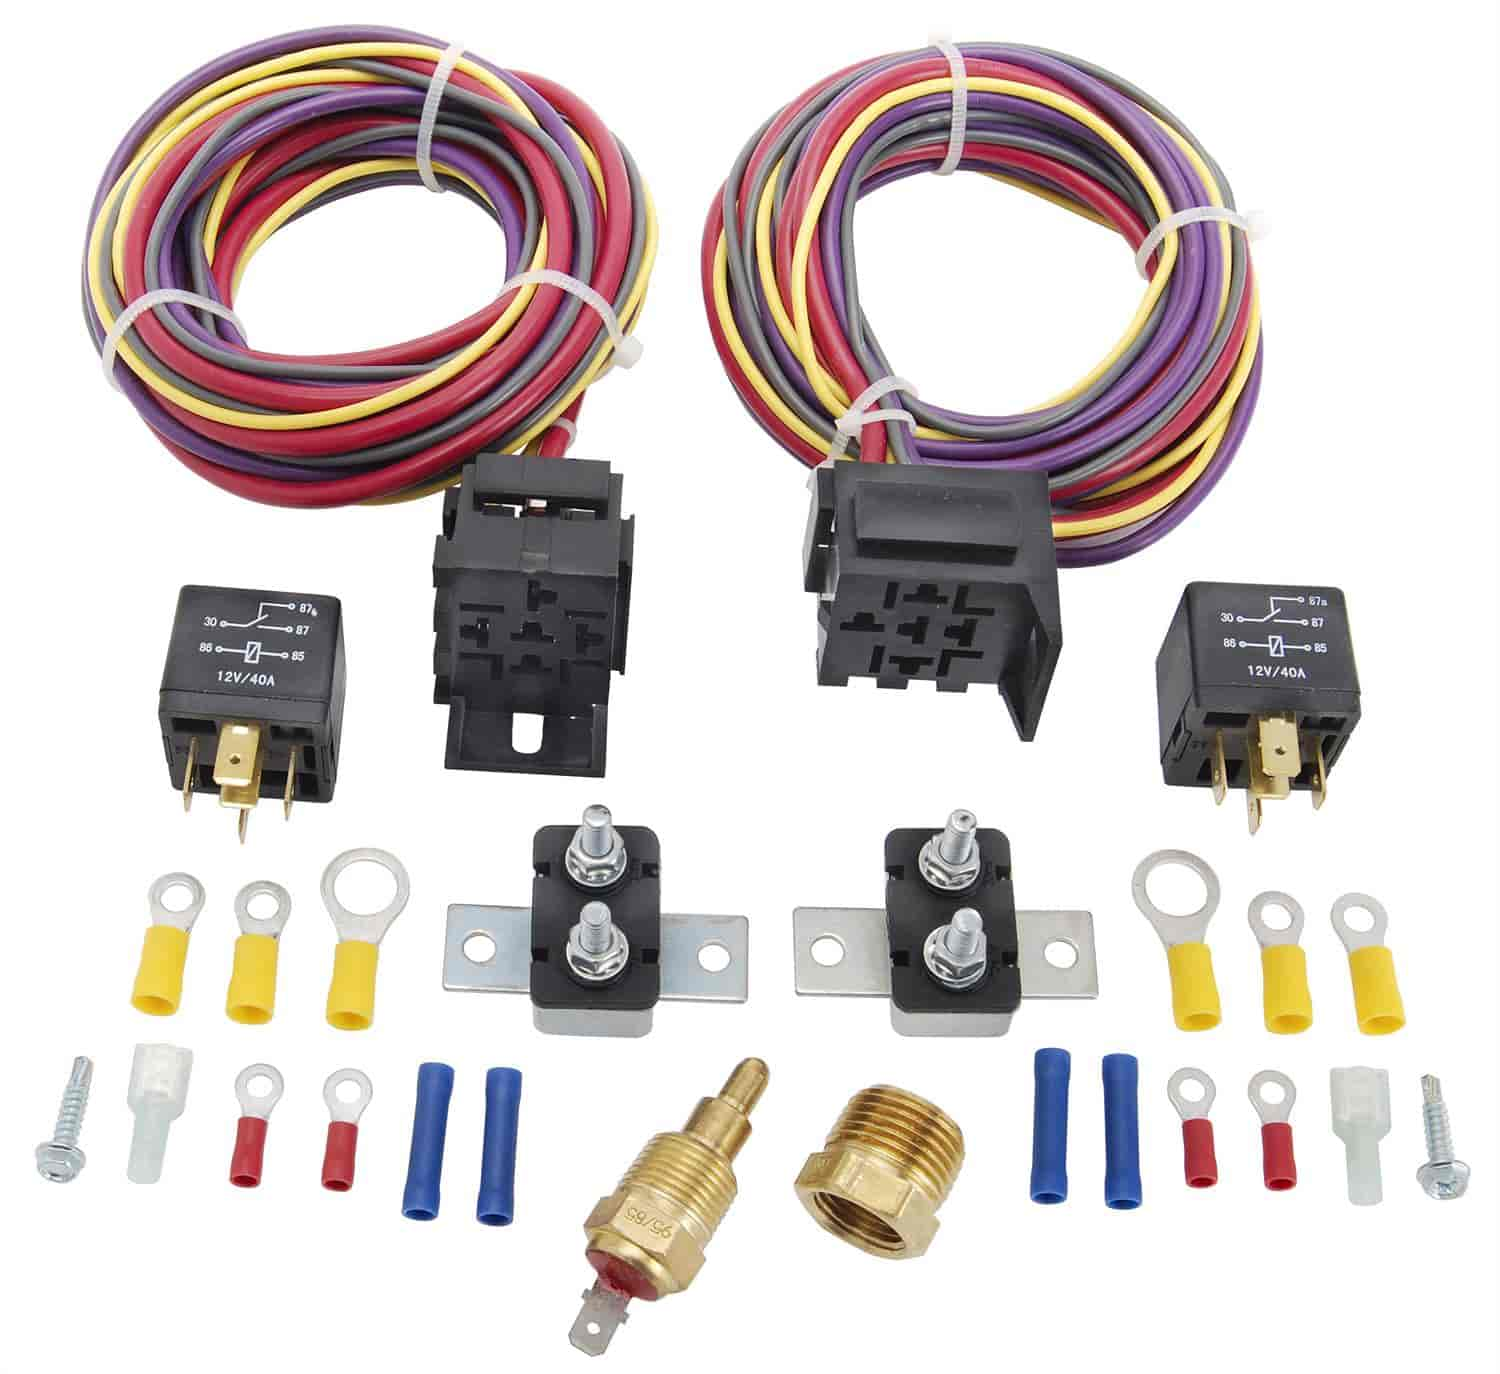 555 10571 jegs performance products 10571 dual fan wiring harness & relay jegs universal wiring harness at alyssarenee.co